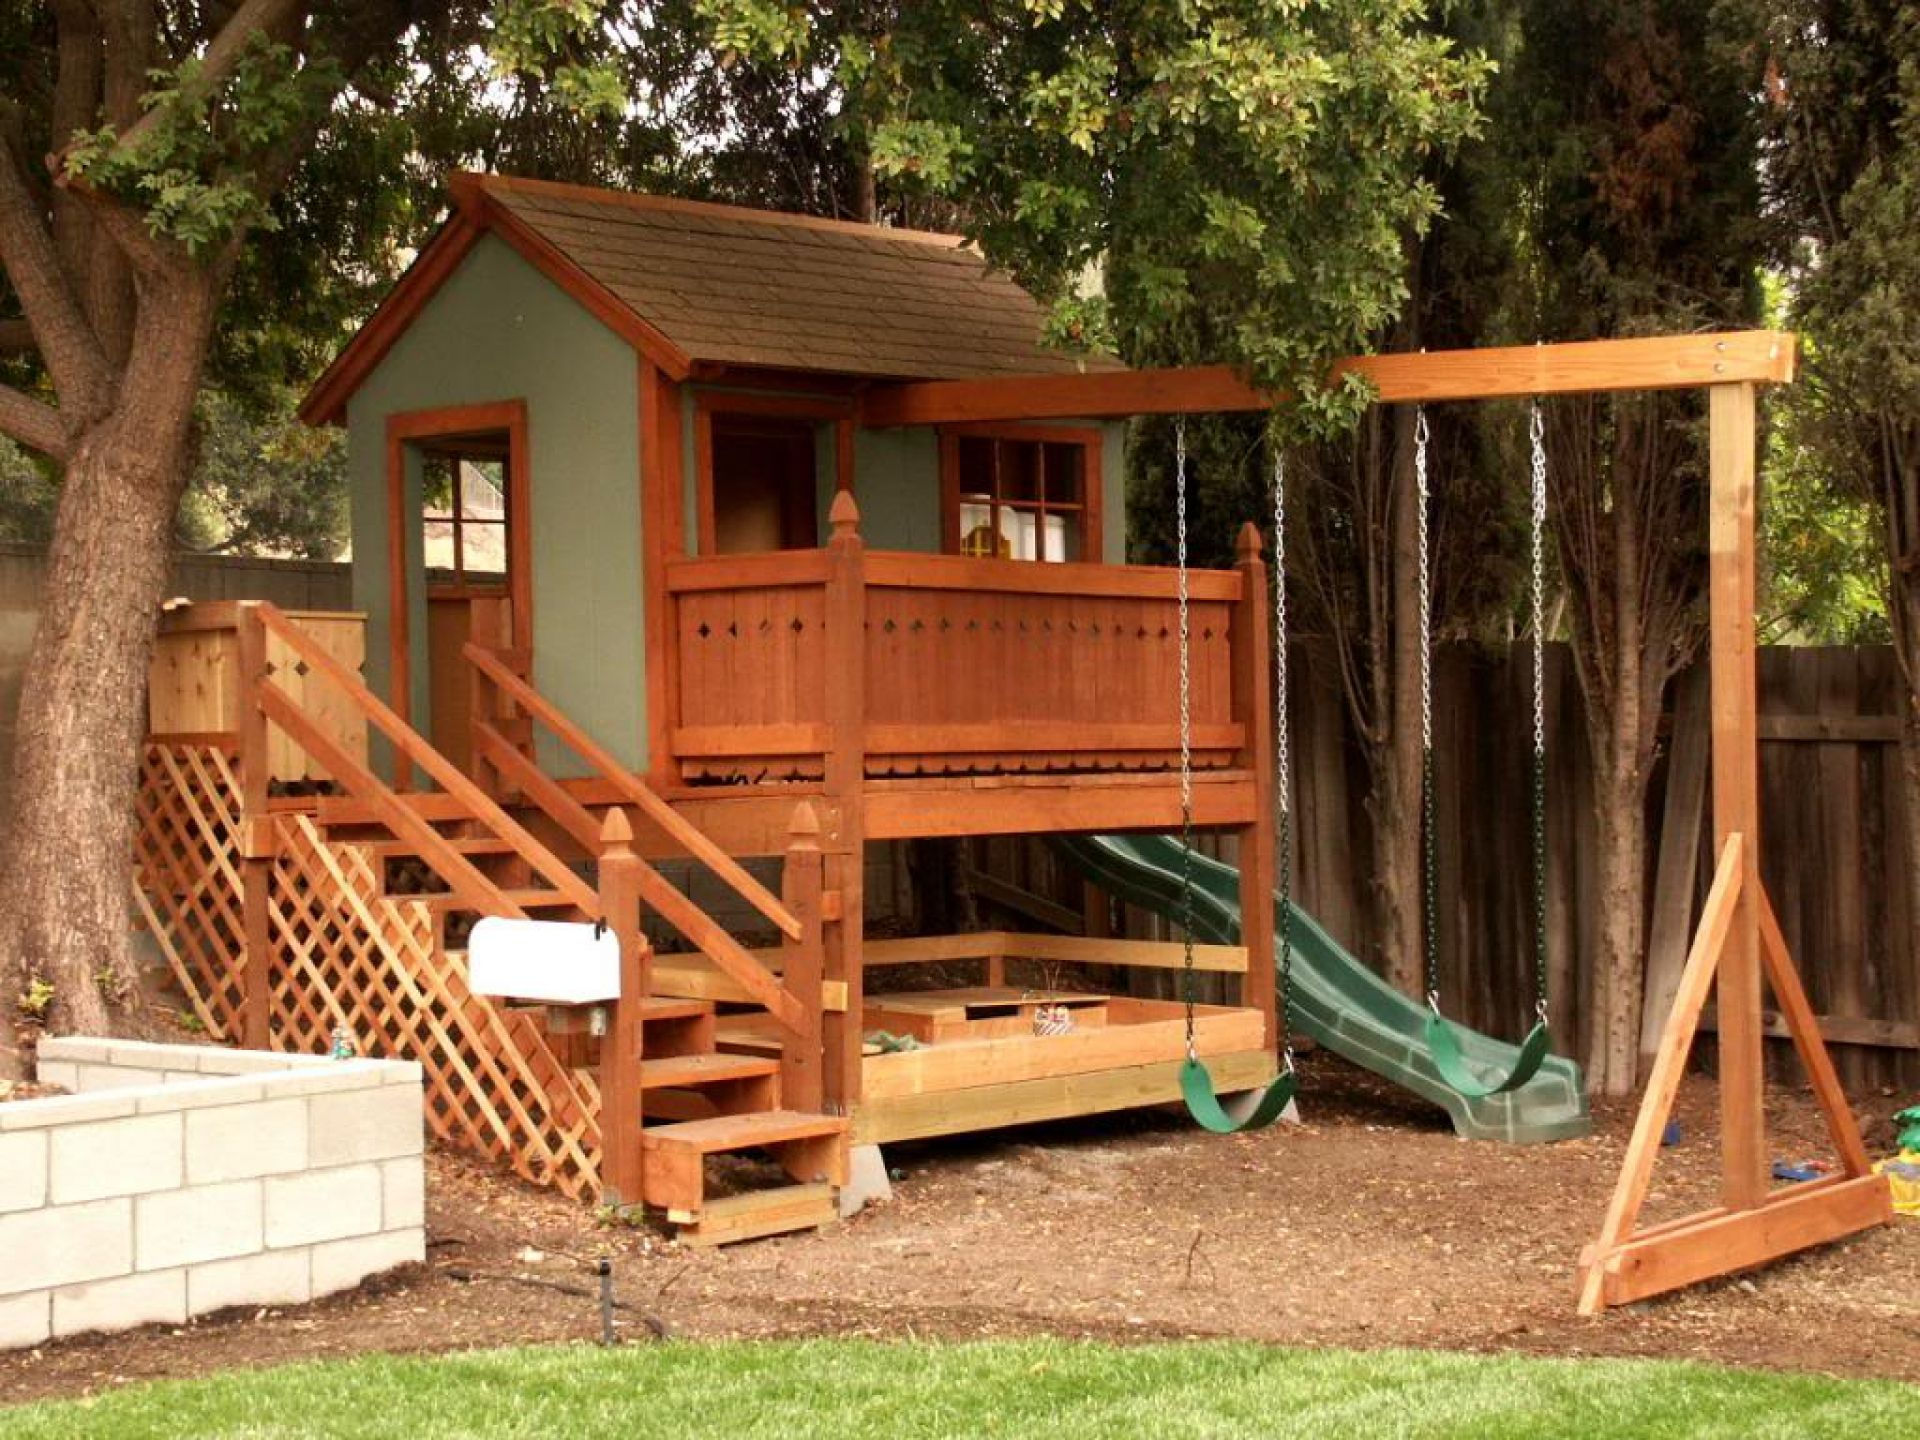 Awesome Vintage House between High Trees and Wooden Fence inside Diy Backyard Ideas